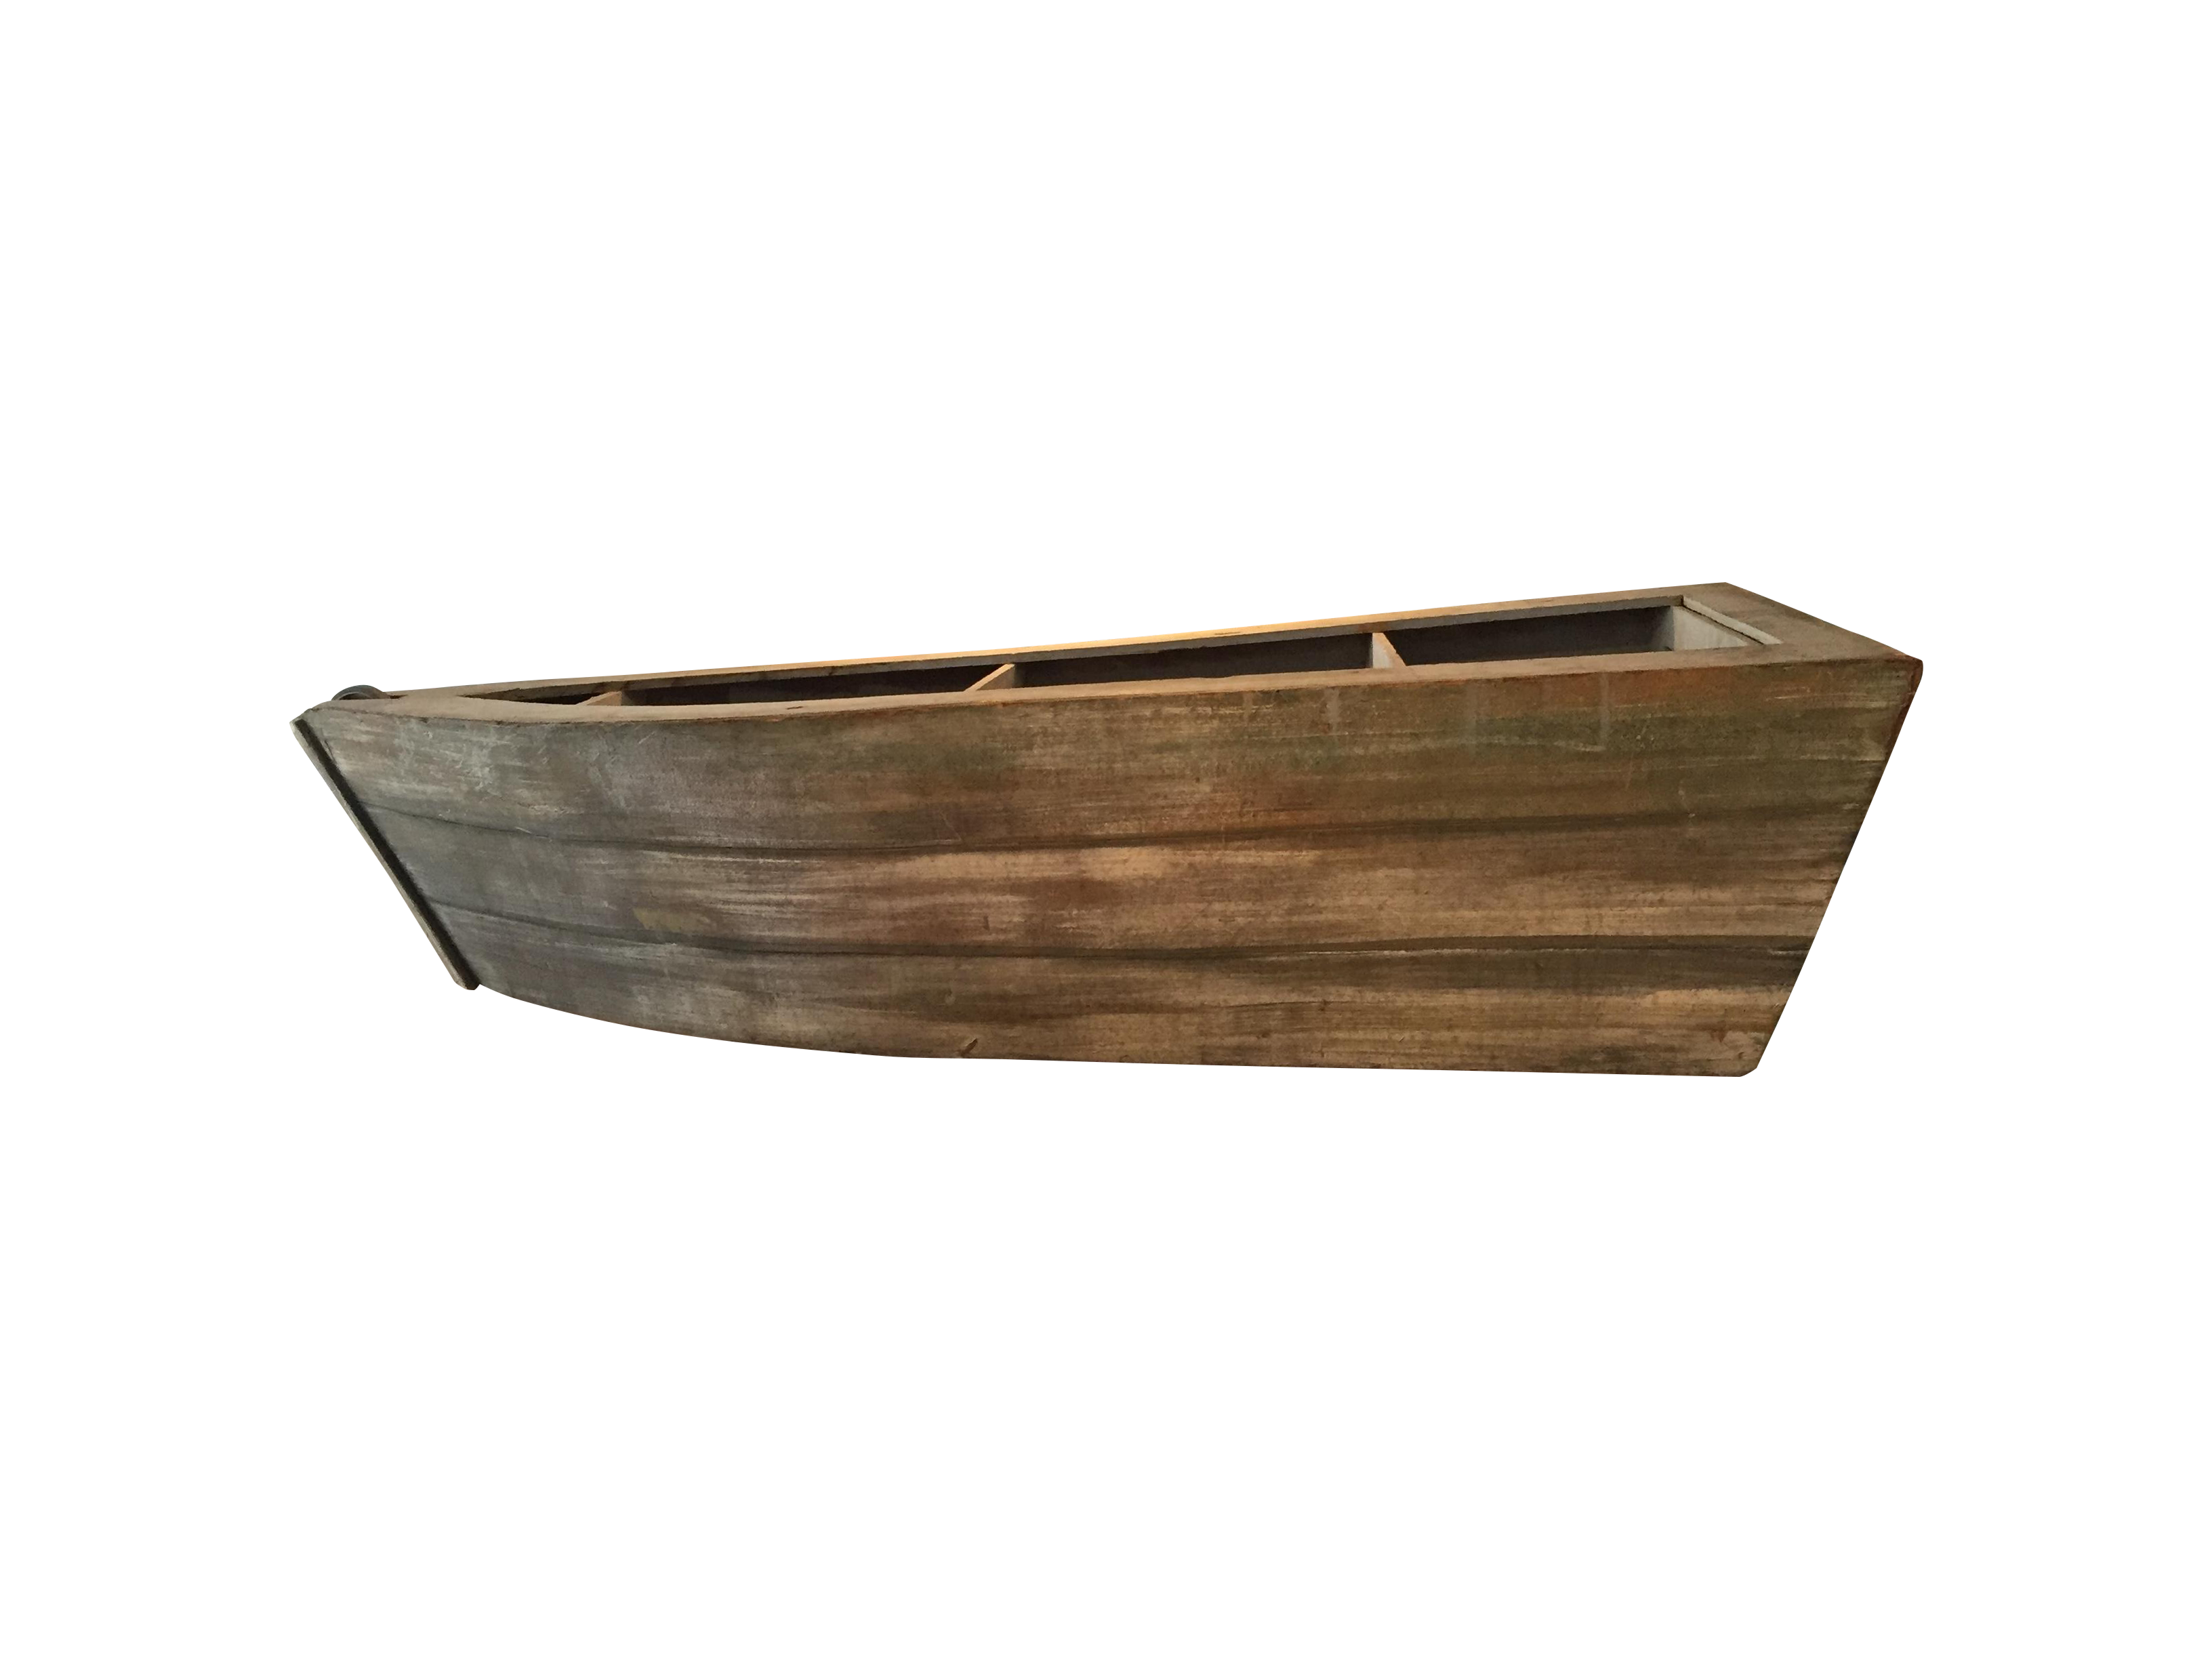 90 wooden boat png biggest wooden ship ever  androscoggin boat works official minecraft wiki Clip Art Empty Glass Bottles Clip Art Empty Glass Bottles